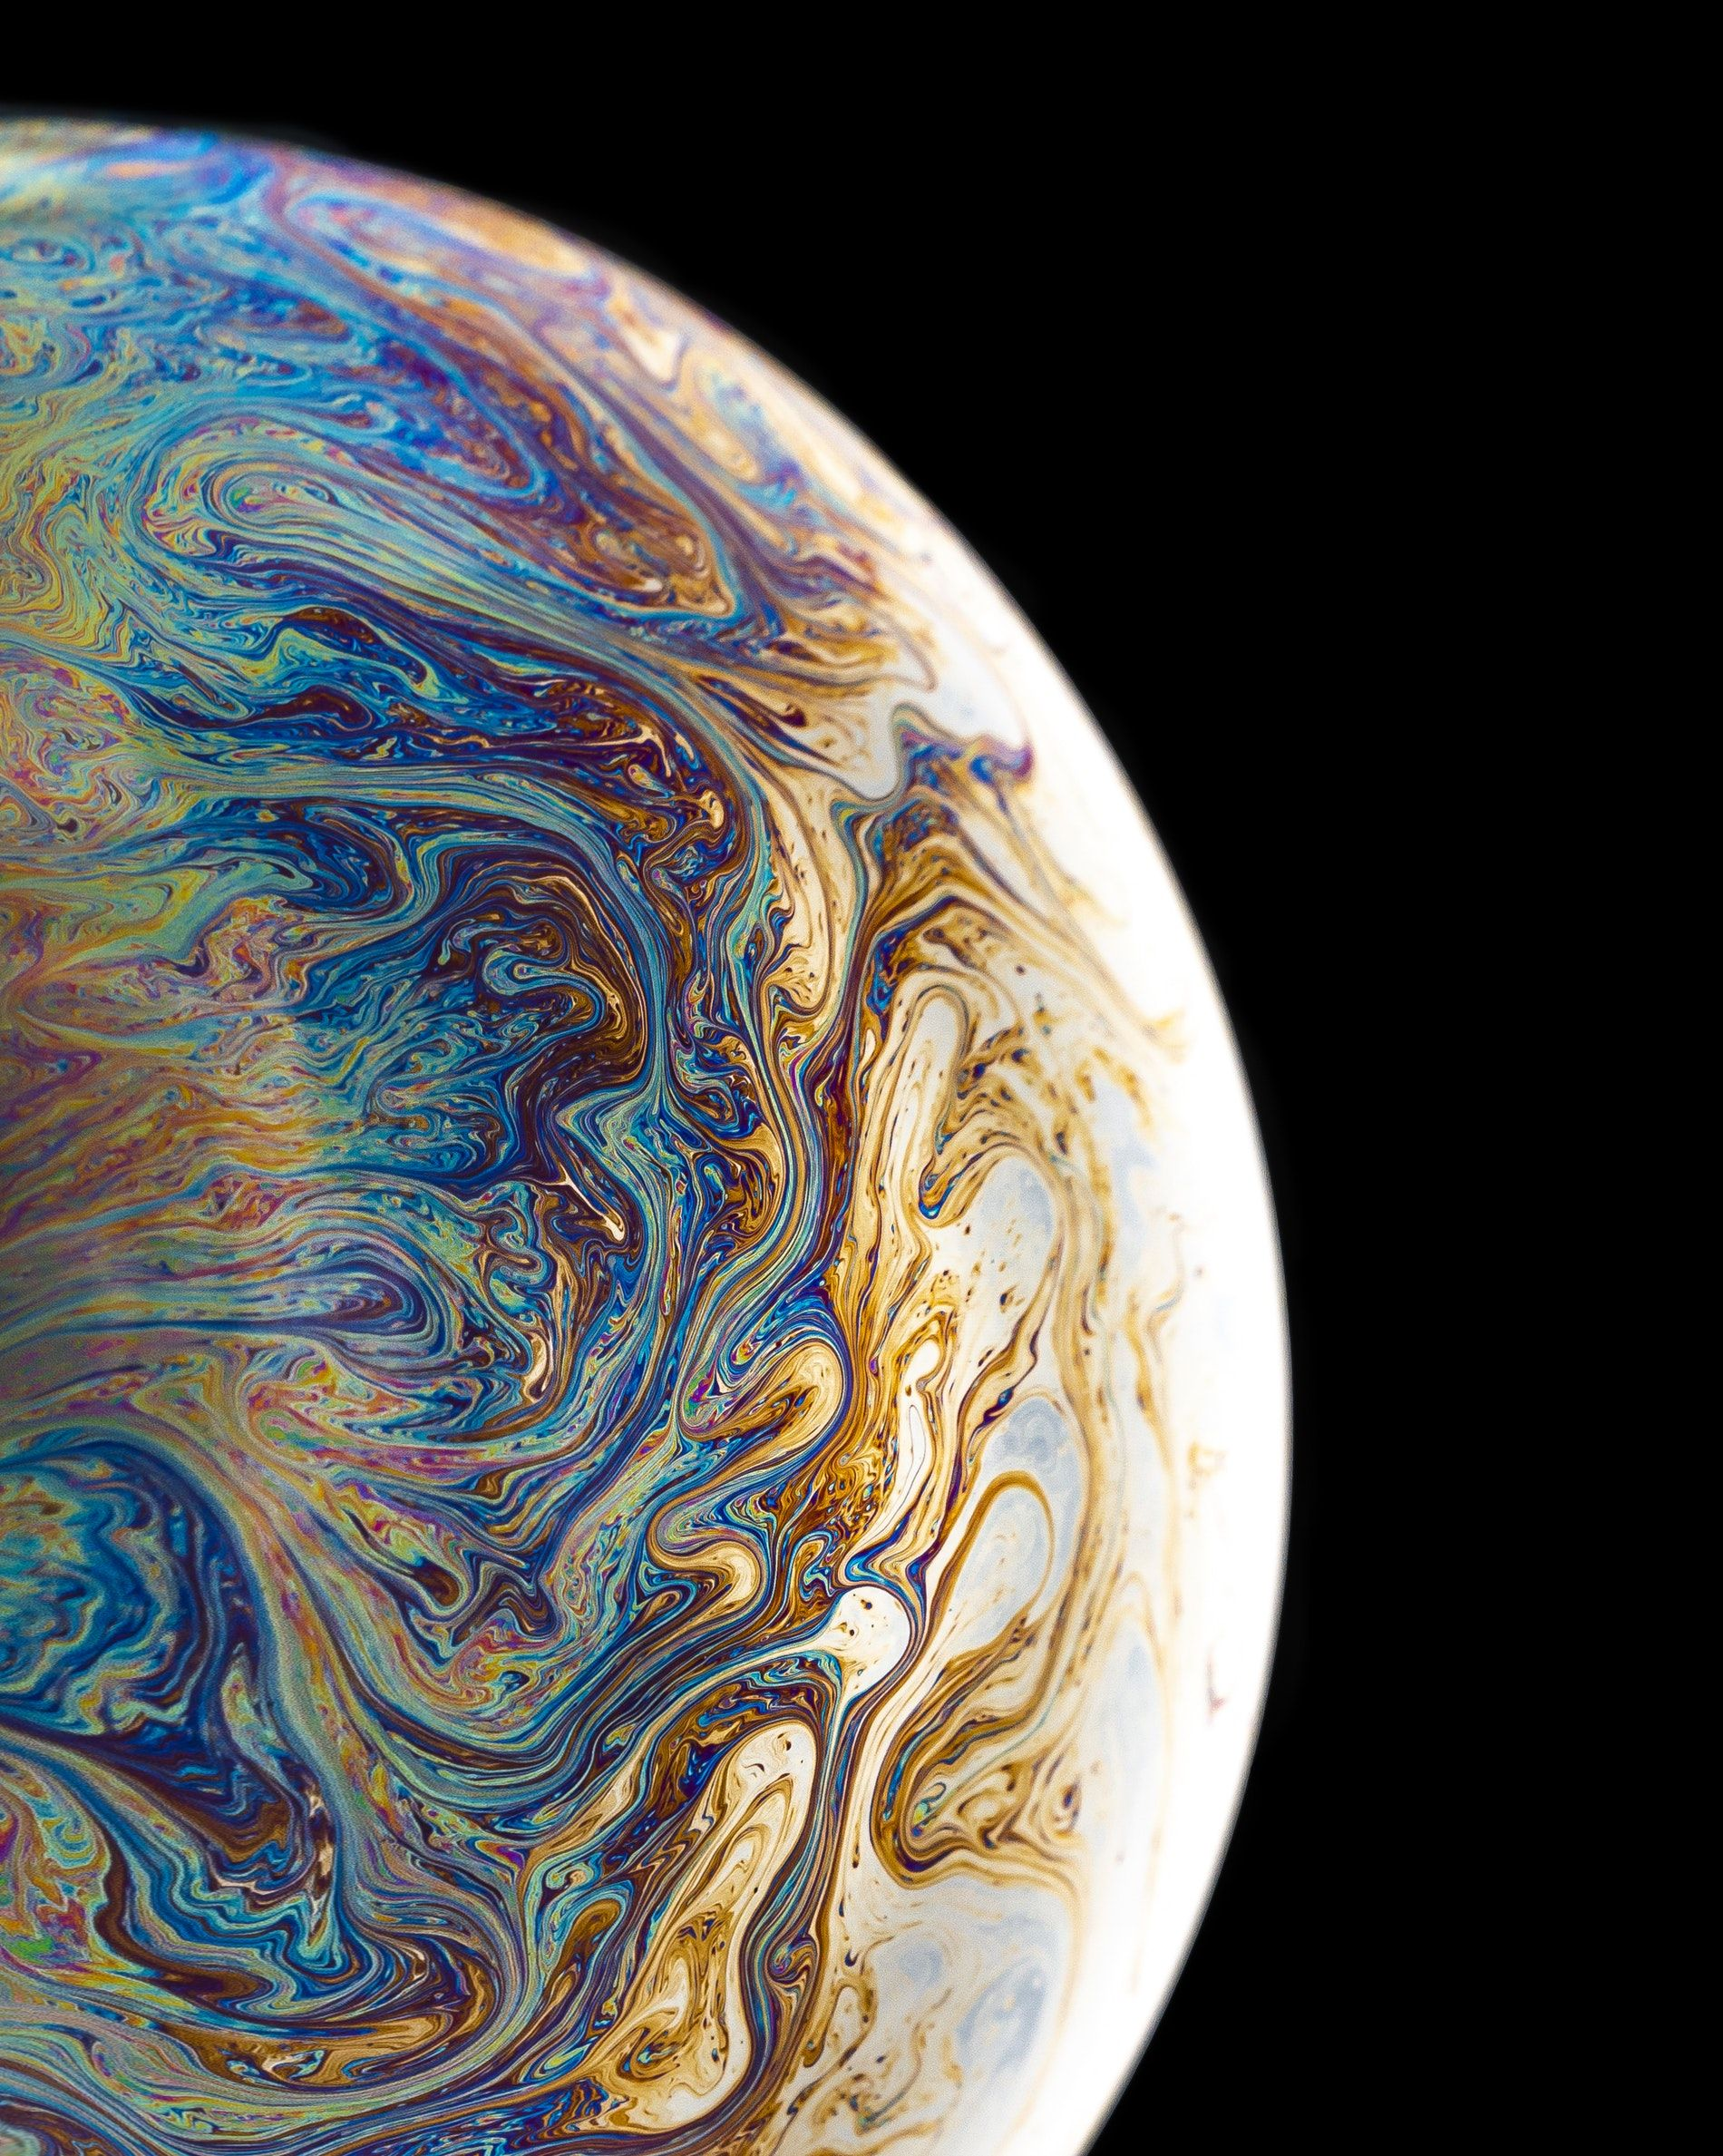 Blue Yellow And Brown Planet With Black Background Trippy Iphone Wallpaper Colourful Wallpaper Iphone Art Wallpaper Iphone